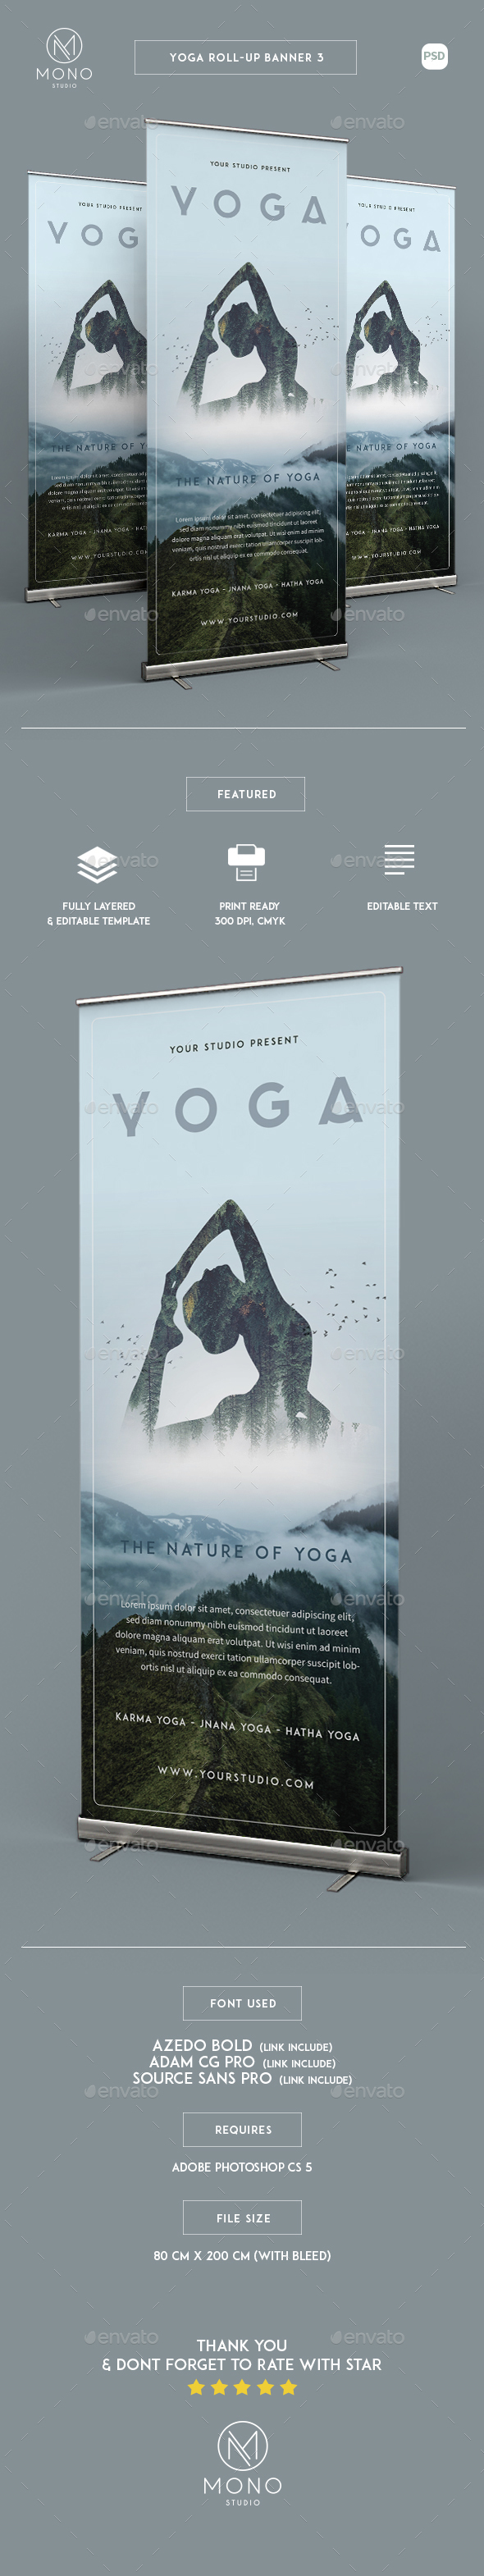 Yoga Roll Up Banner 3 - Signage Print Templates